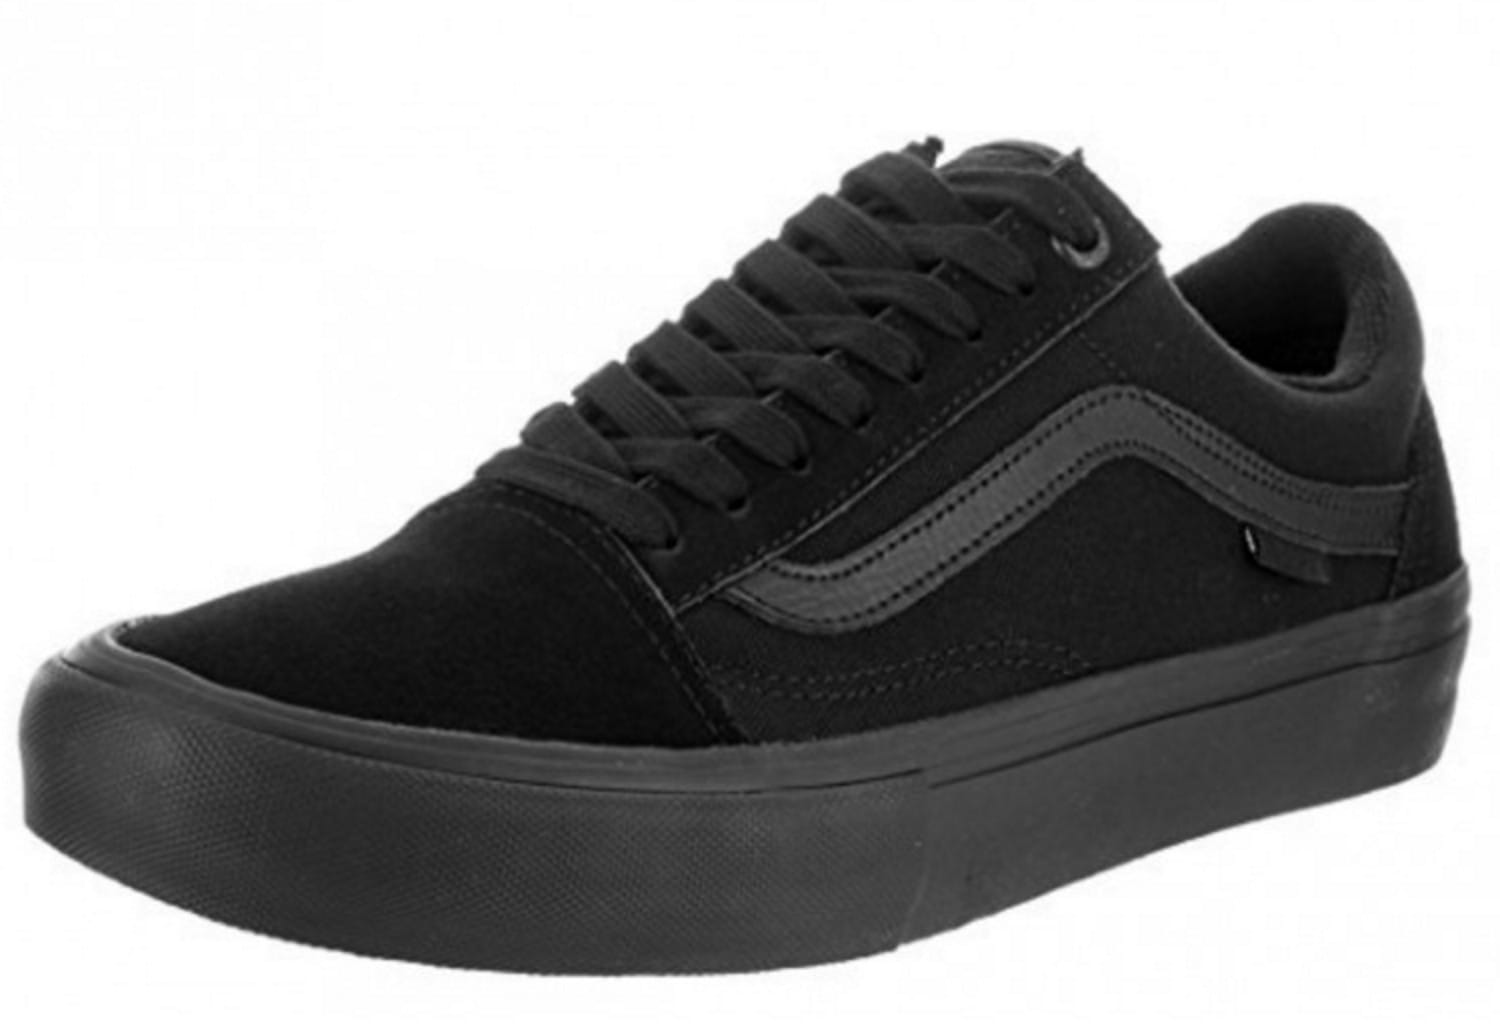 vans negra old skool